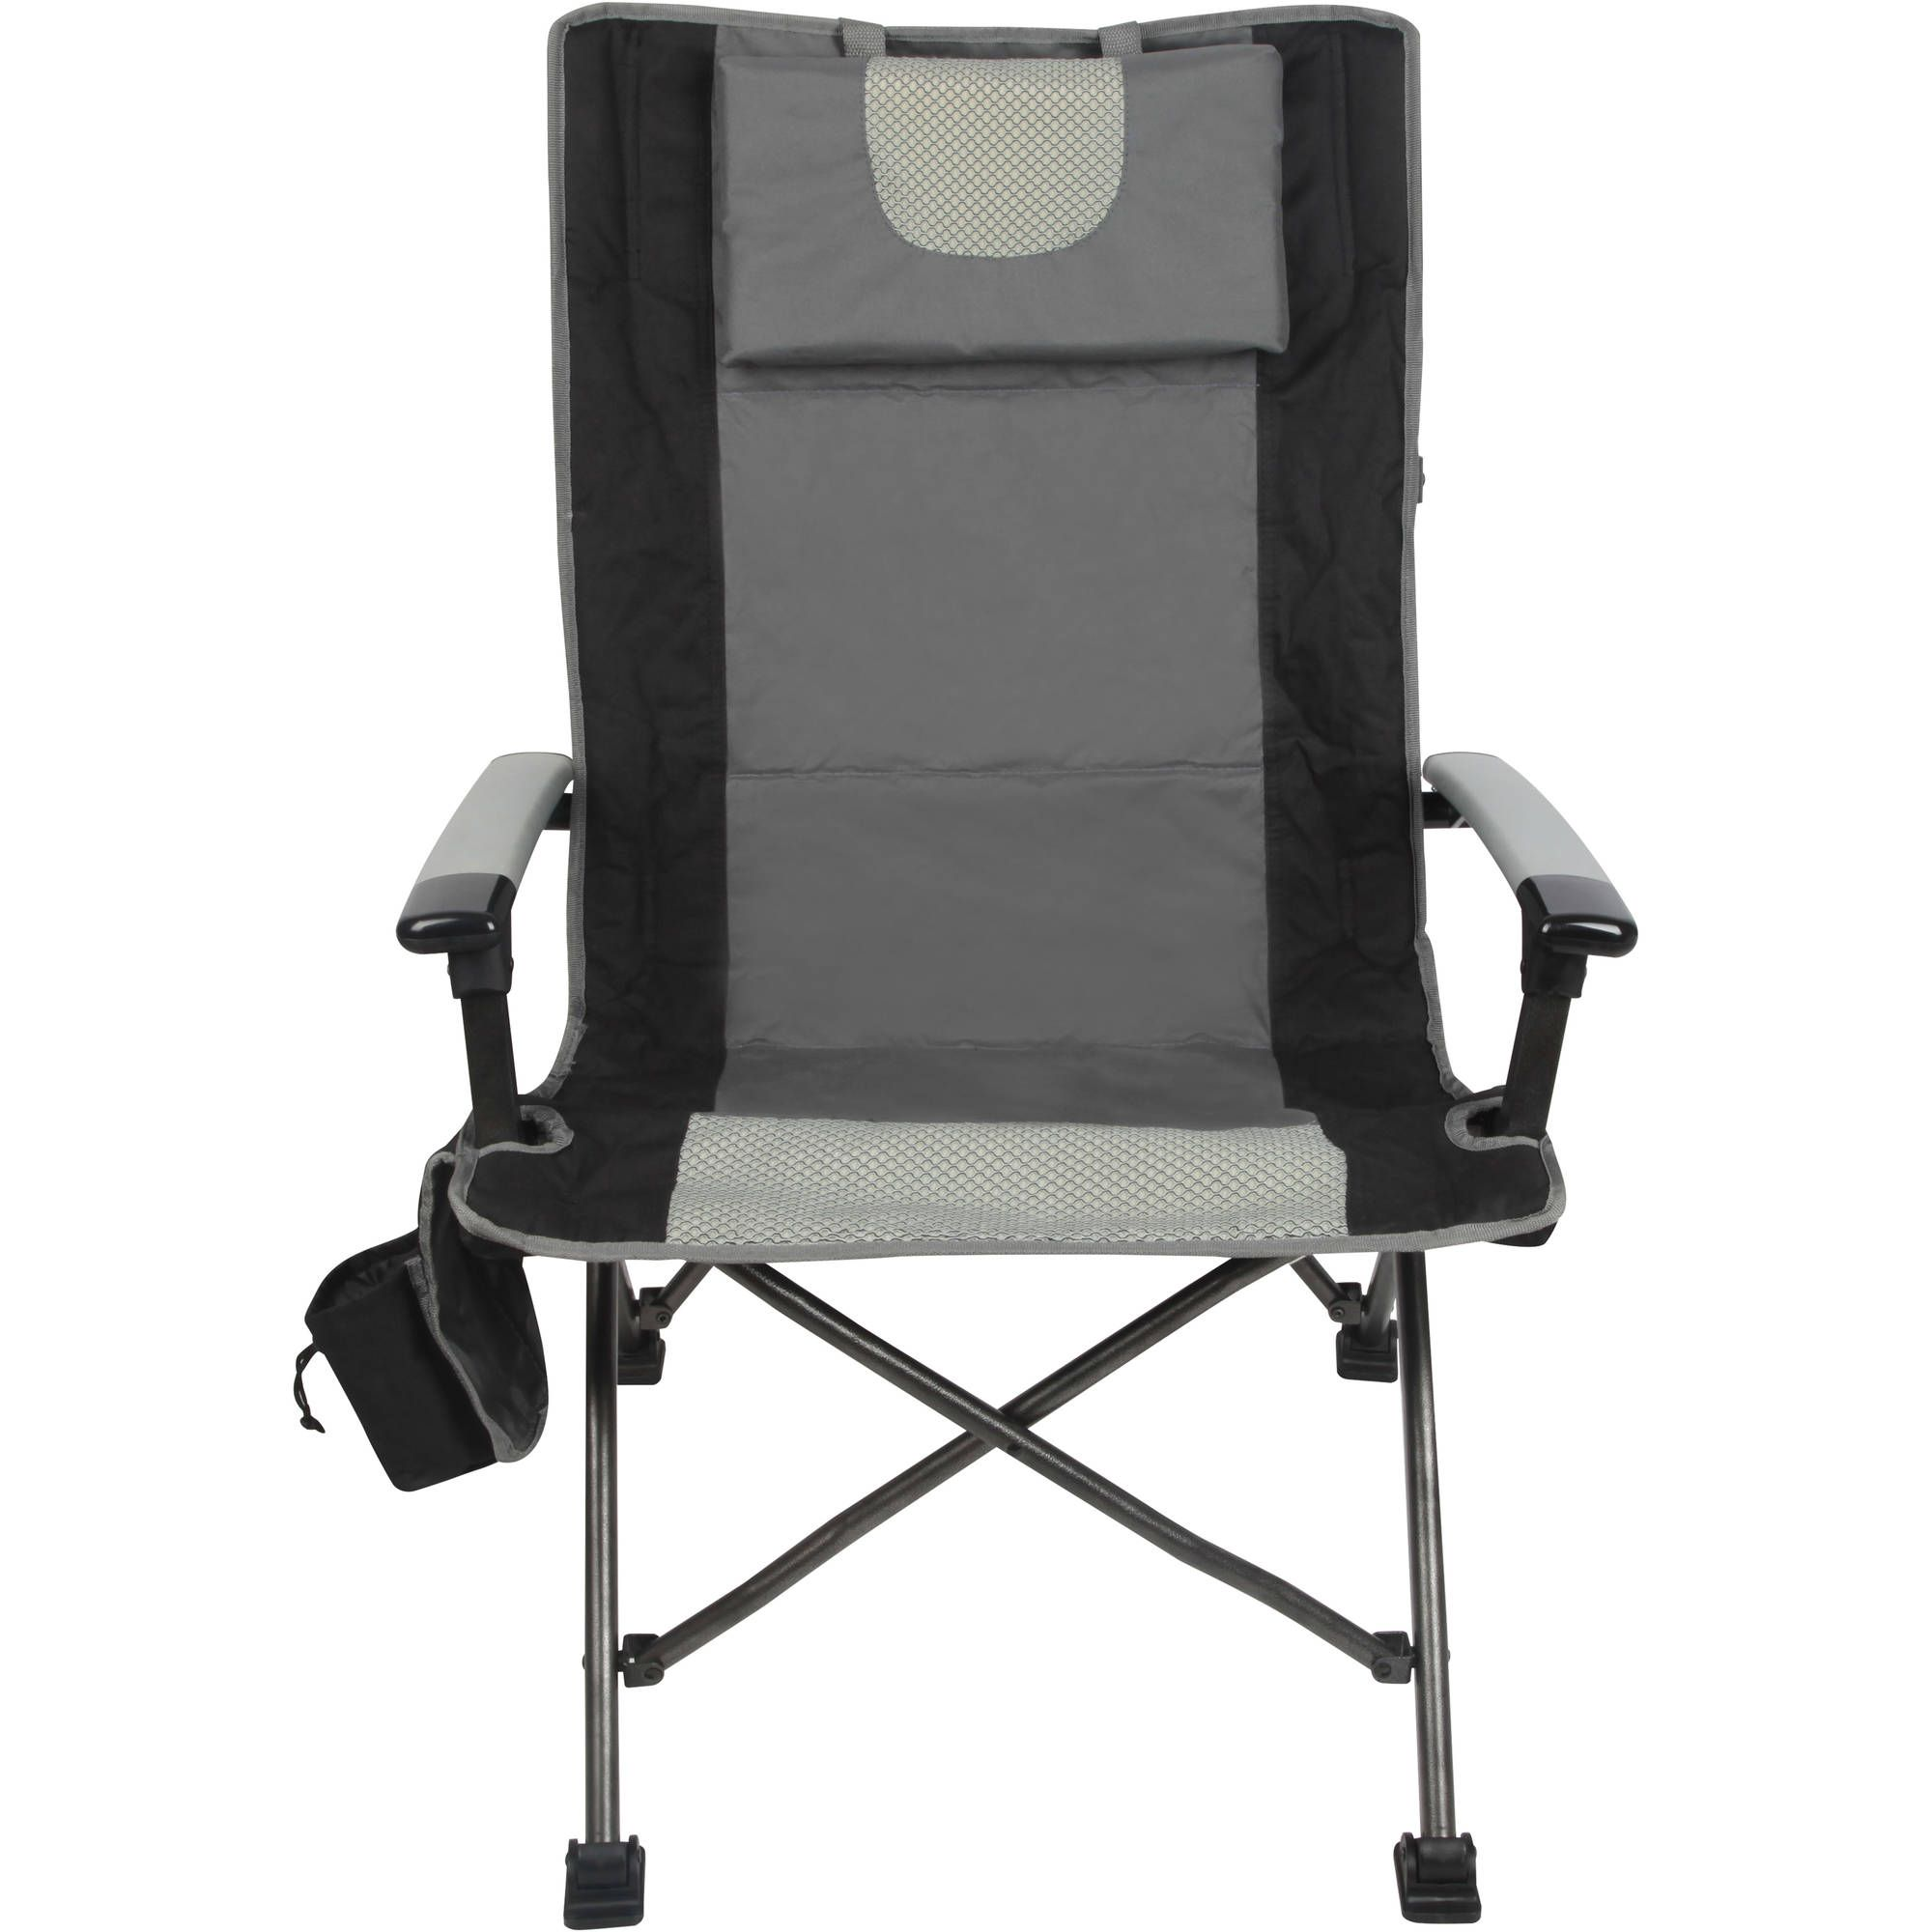 high outdoor folding chairs child rocking chair cushions back with headrest set of 2 comfortable camping seat